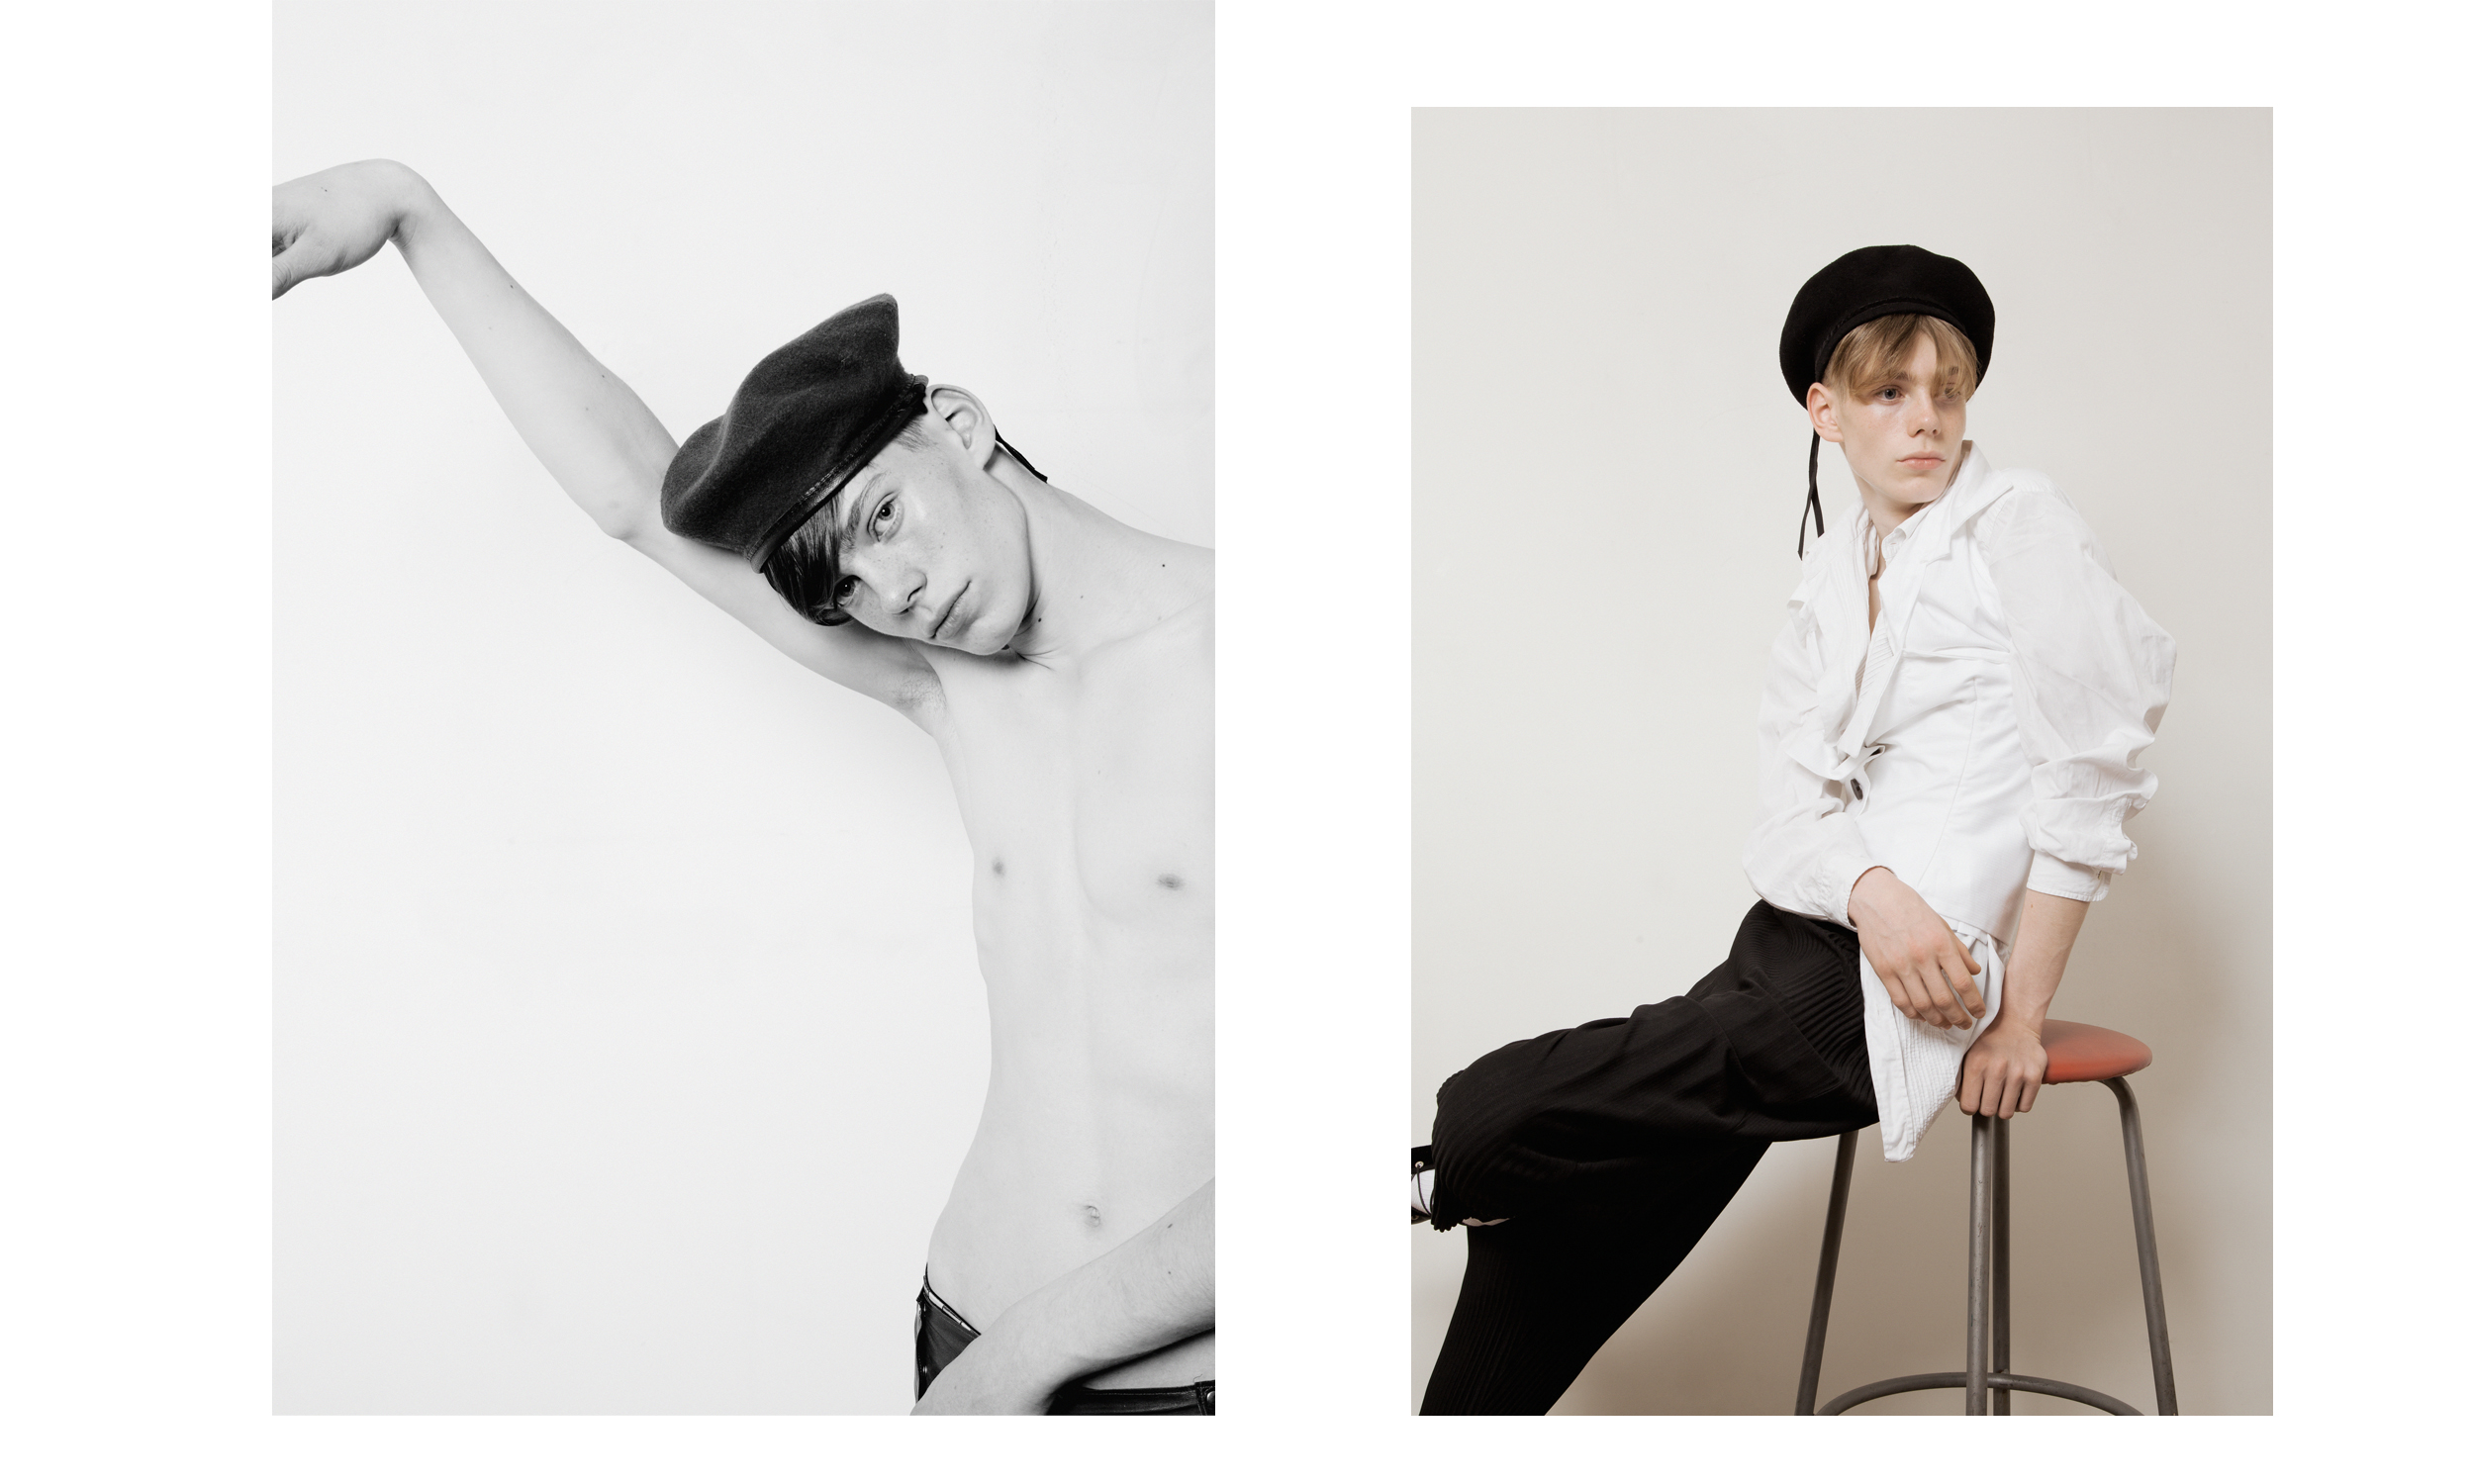 Left Pants Ludovic de Saint Sernin and Beret Stylist's Archive   Right Shirt Canali, Bodice/Wrap Aaizel and pants Homme Plissé Issey Miyake from Browns Fashion